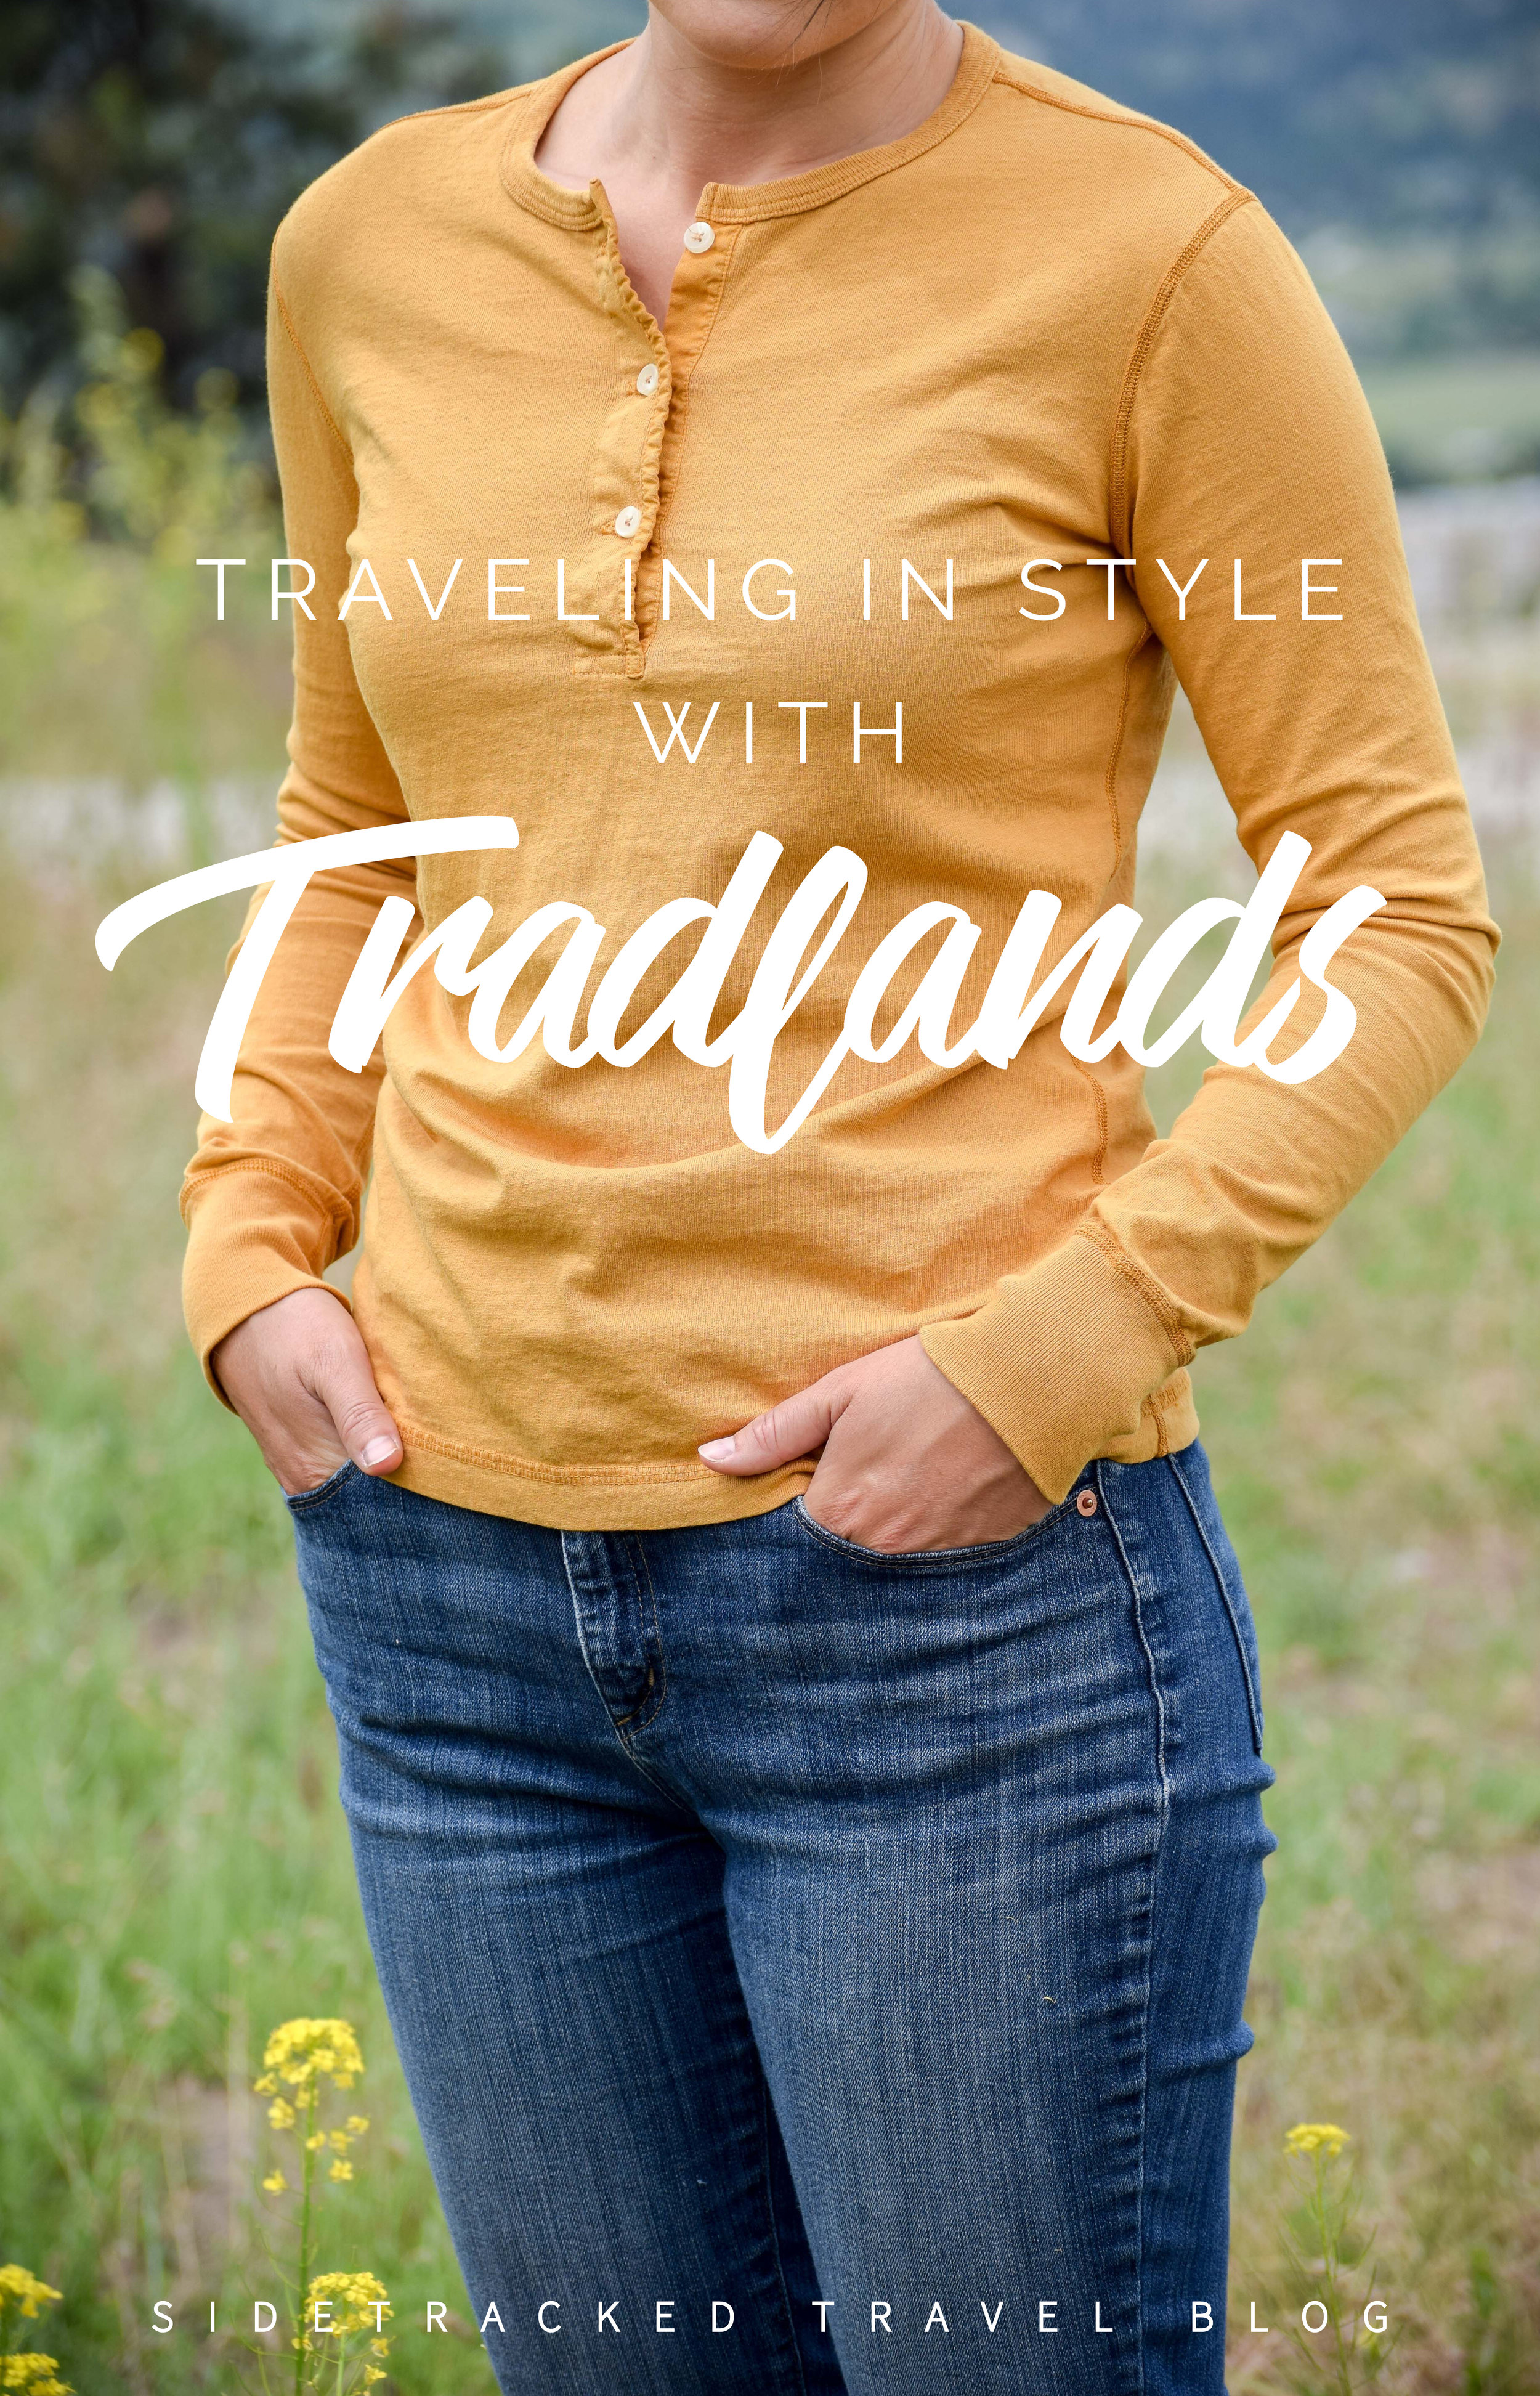 In protest to the highly marketed women's outdoor gear travel wear, I've endlessly been on the hunt for functional, comfortable, and stylish clothing that I can take with me in my 40L backpack and feel good about wearing on the road. I've finally found just the right brand that meets all my expectations: Tradlands.